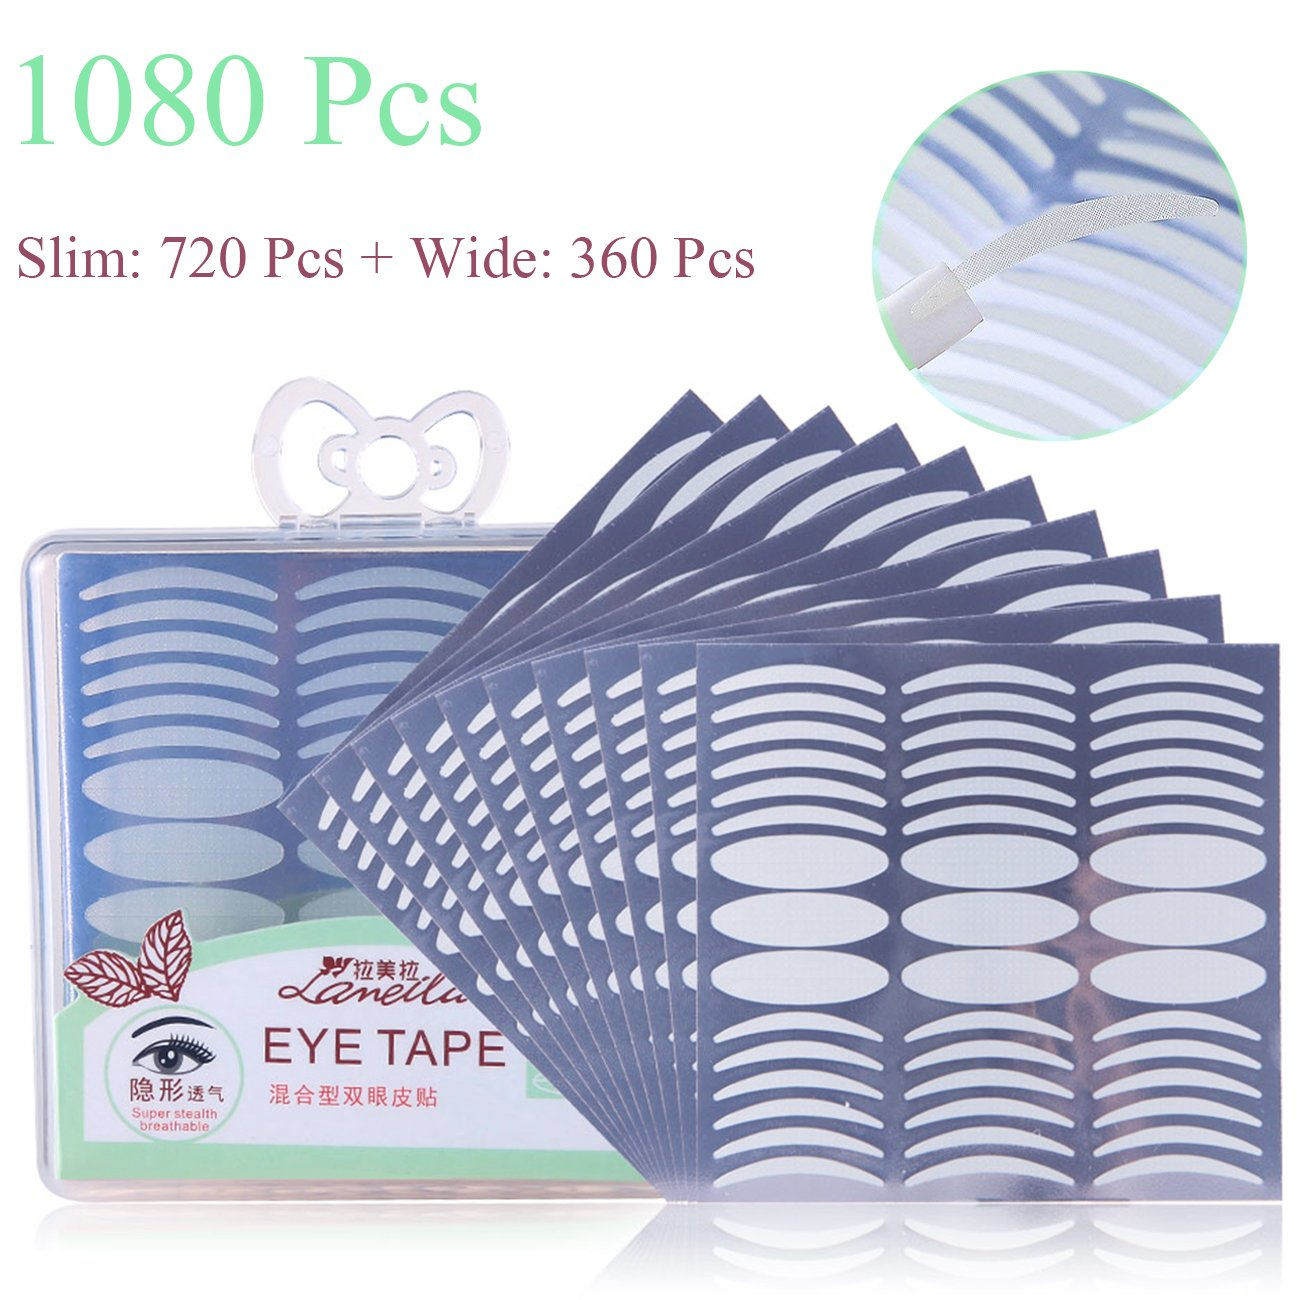 1080 Pcs / 540 Pairs Eyelid Lift Strips Naturally Invisible Eyelid Tape Breathable Big Eye Makeup Tool